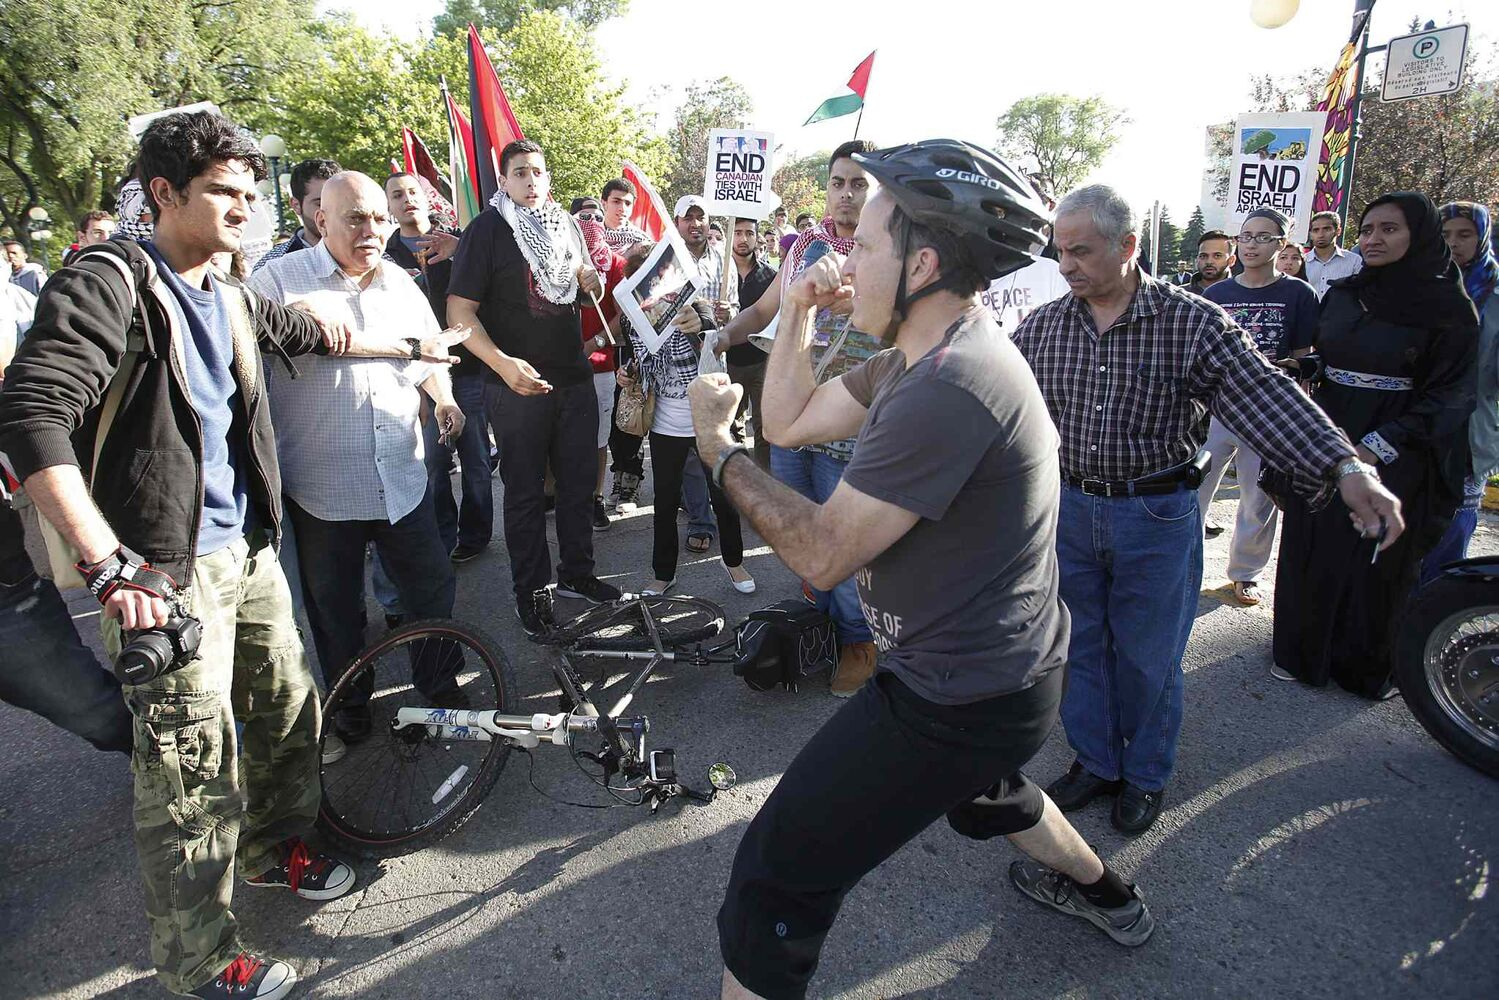 An Israel supporter cyclist provokes peaceful Palestinian supporters by yelling